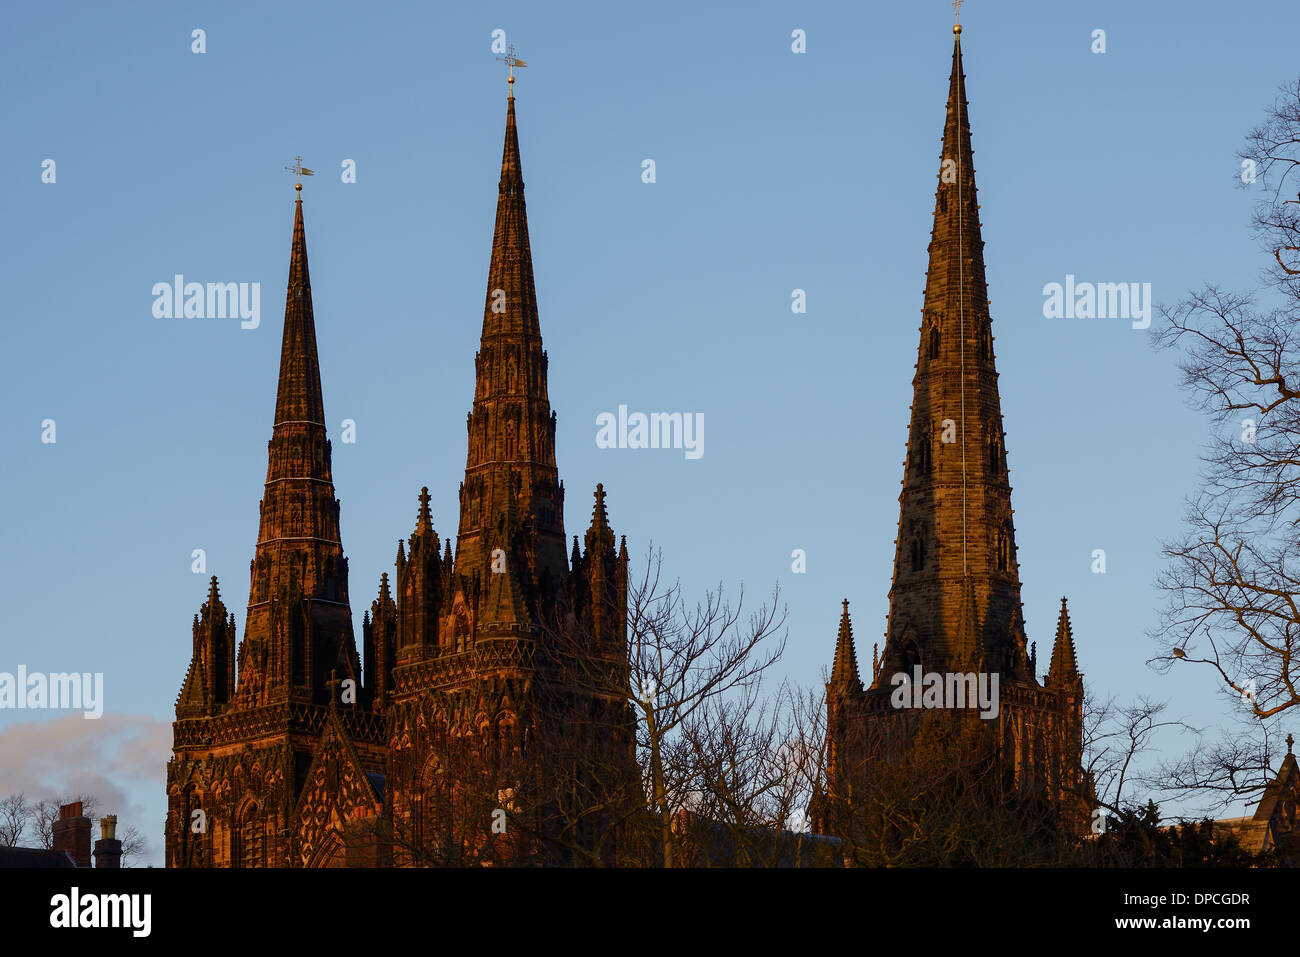 The three spires of Lichfield Cathedral - Stock Image